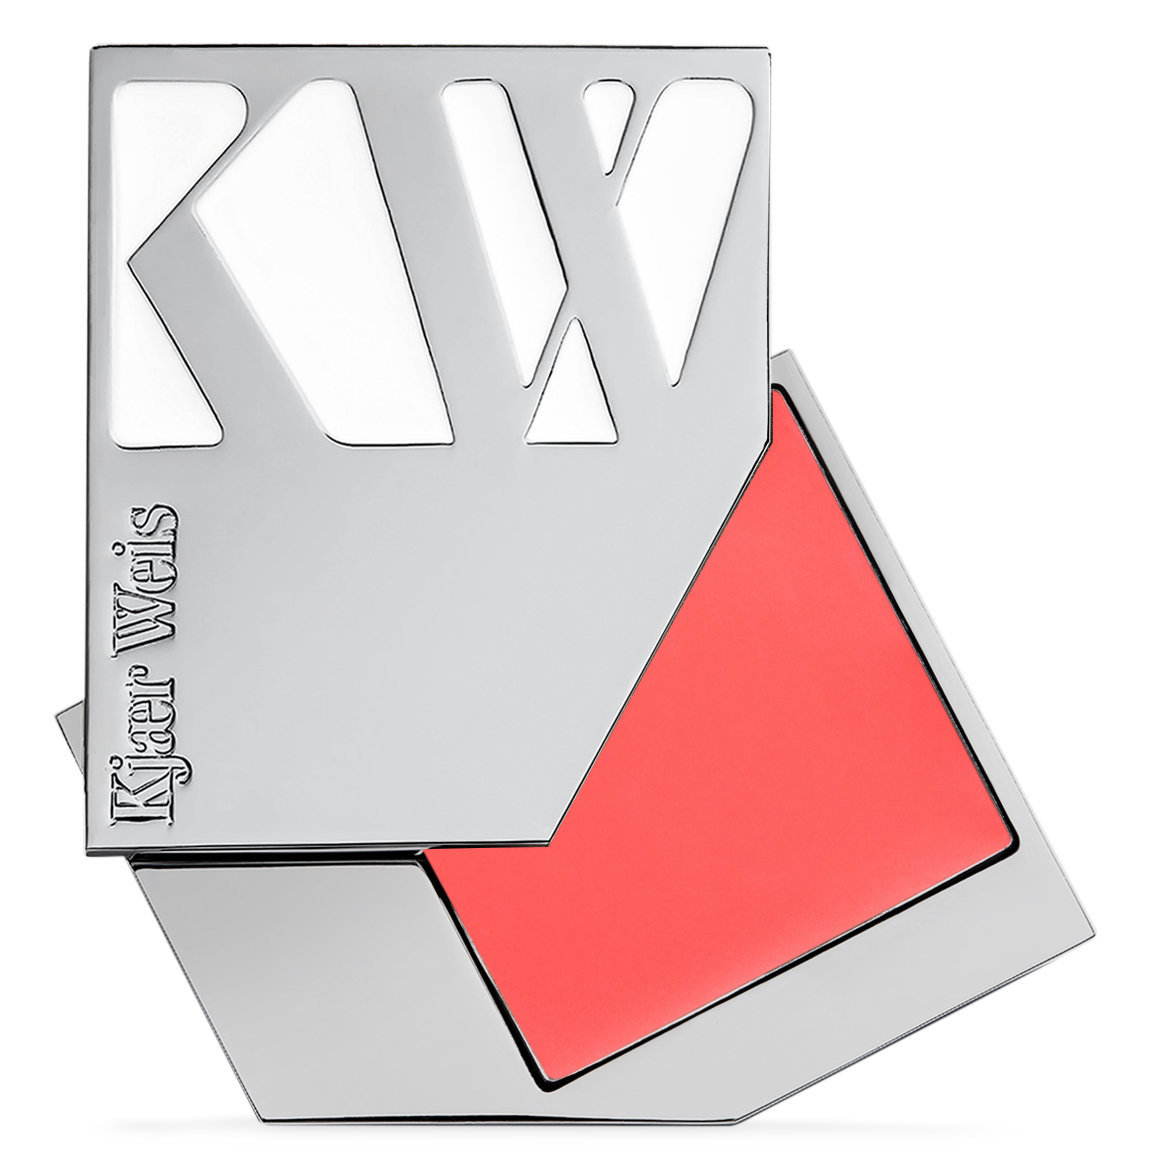 Kjaer Weis Cream Blush Above and Beyond alternative view 1.